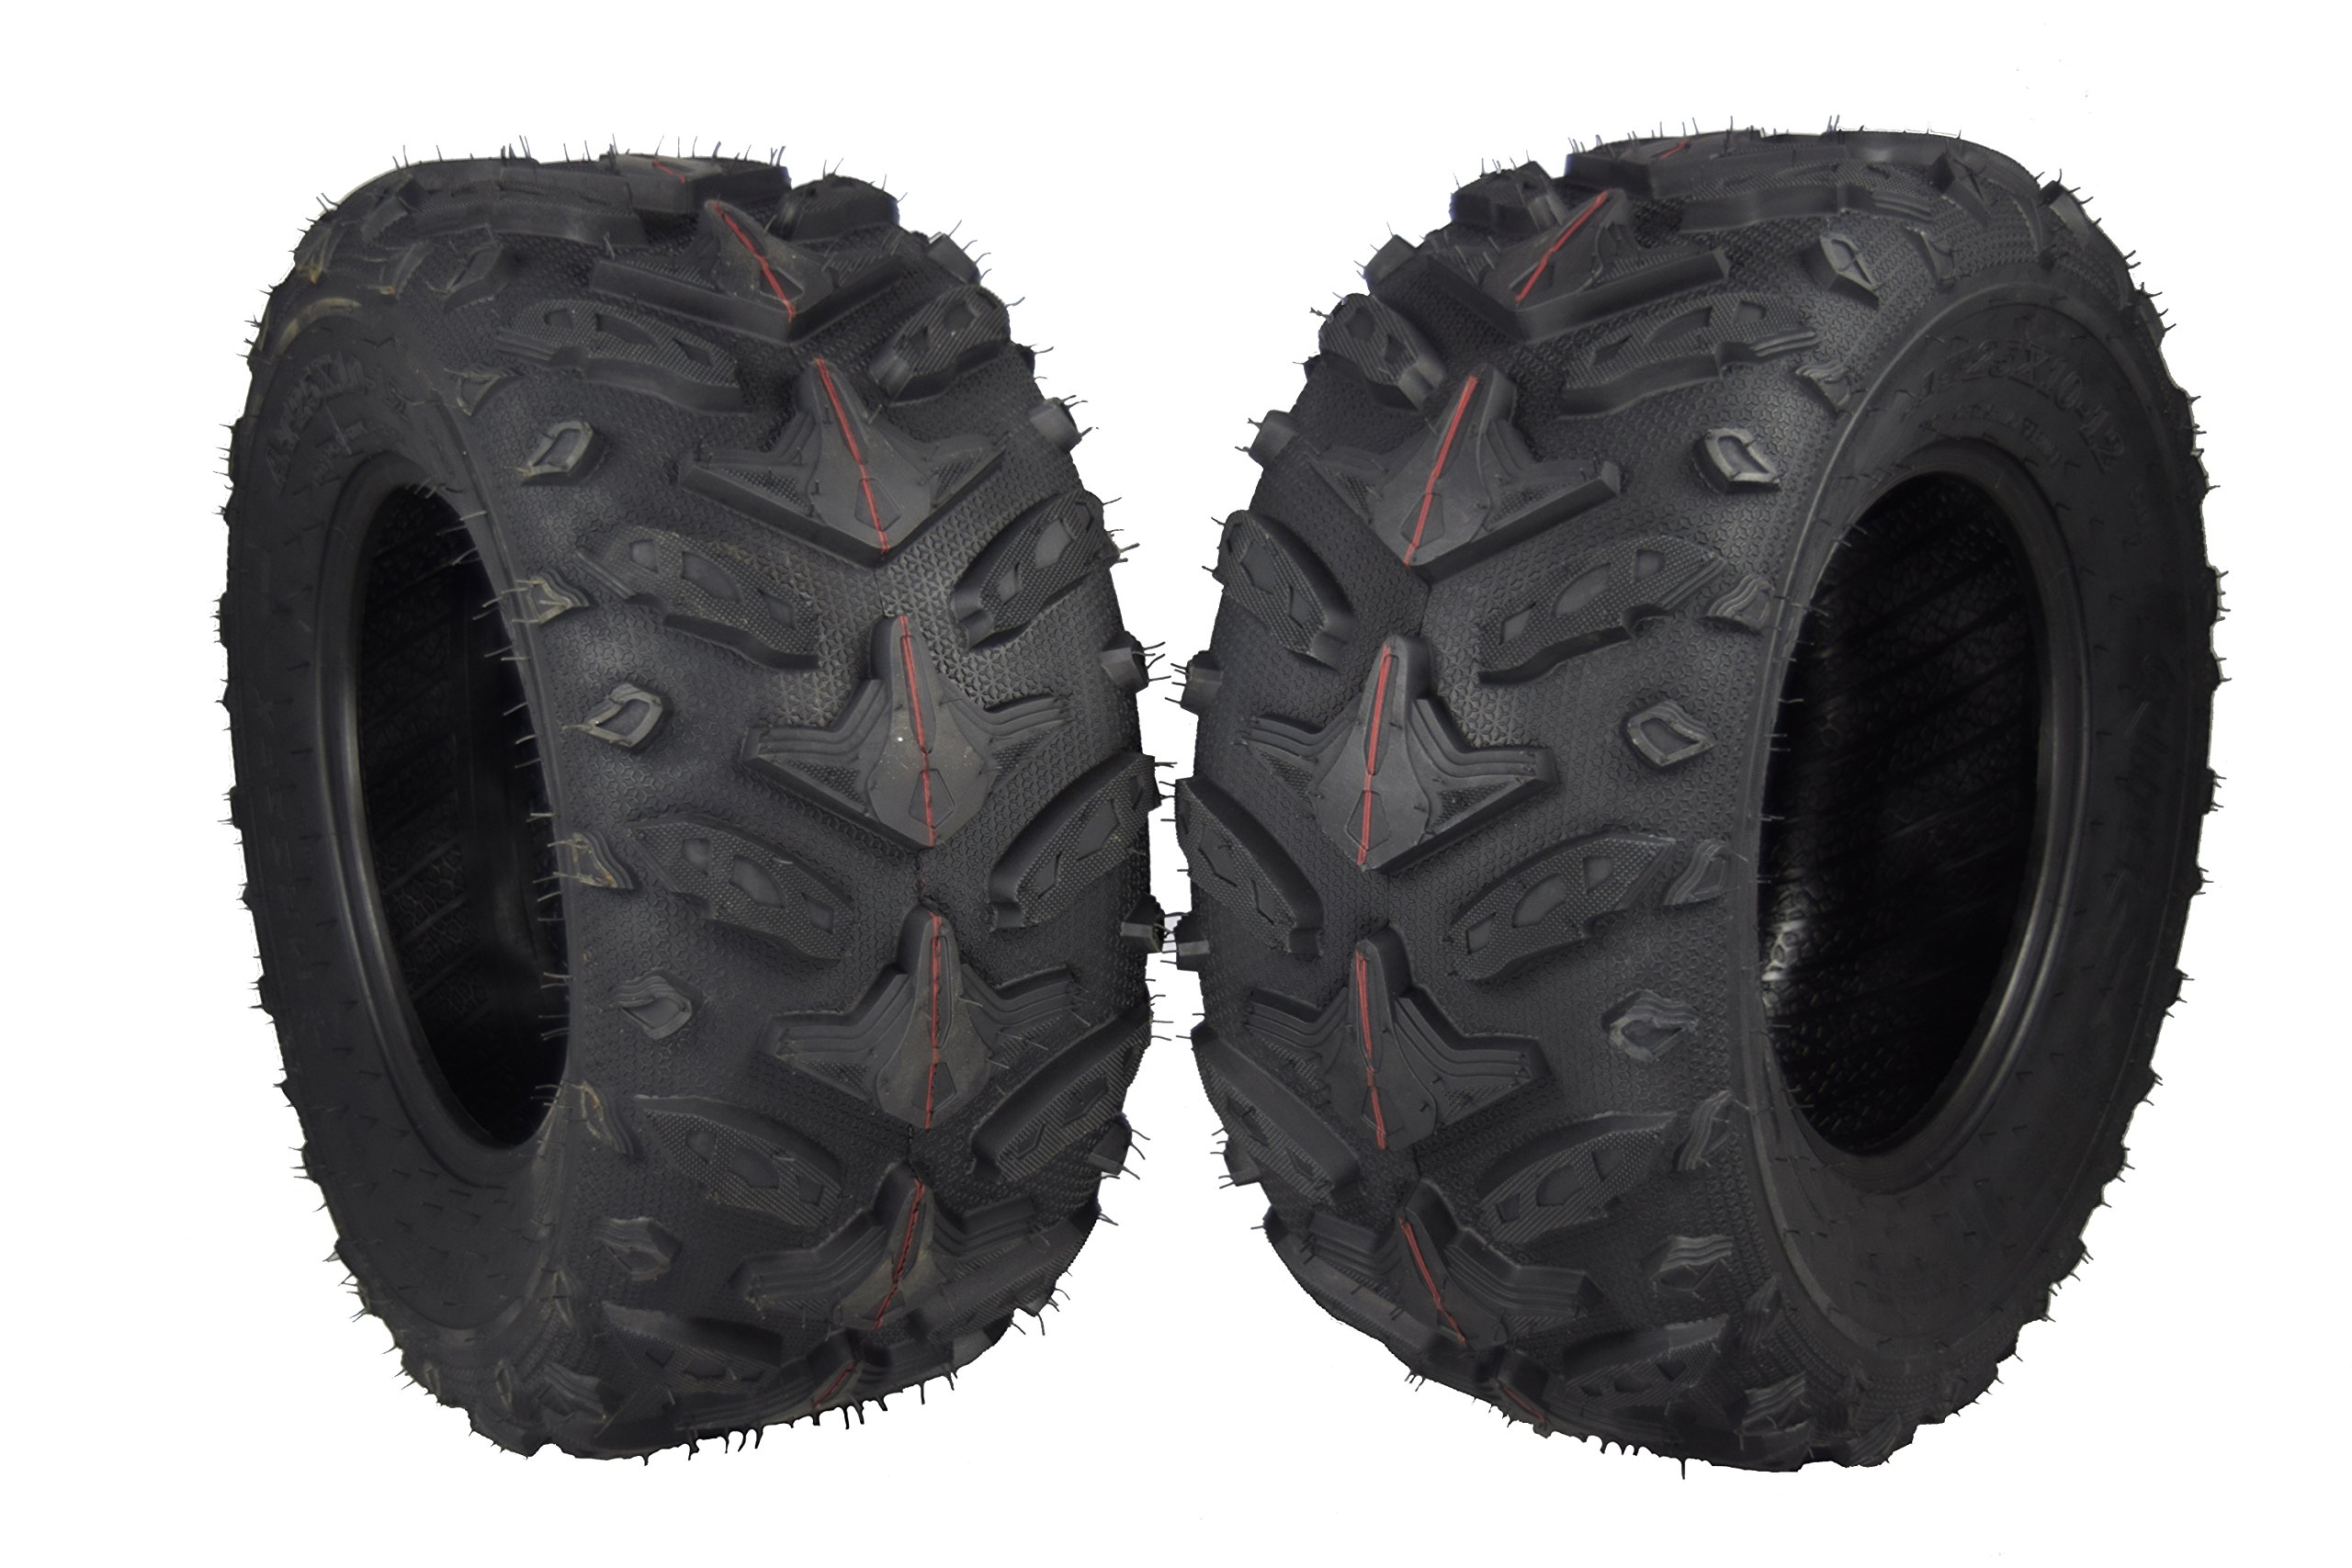 MASSFX Grinder Series ATV Dual Compound Tread Mud Sand Snow and Rock Tires (Two Rear 25x10-12)